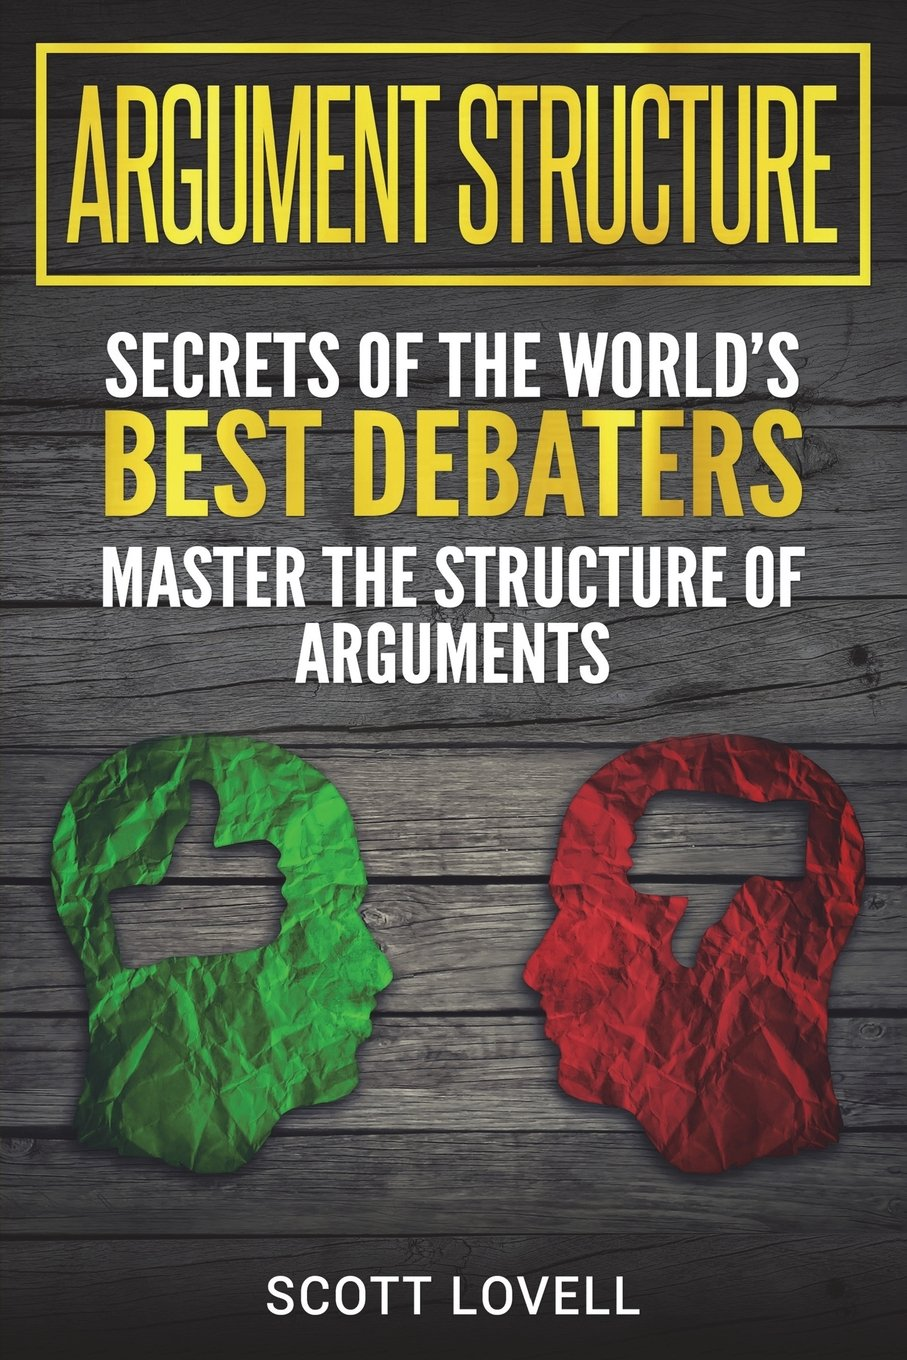 Argument Structure: Secrets of the World's Best Debaters - Master the  Structure of Arguments: Scott Lovell: 9781723485442: Amazon.com: Books